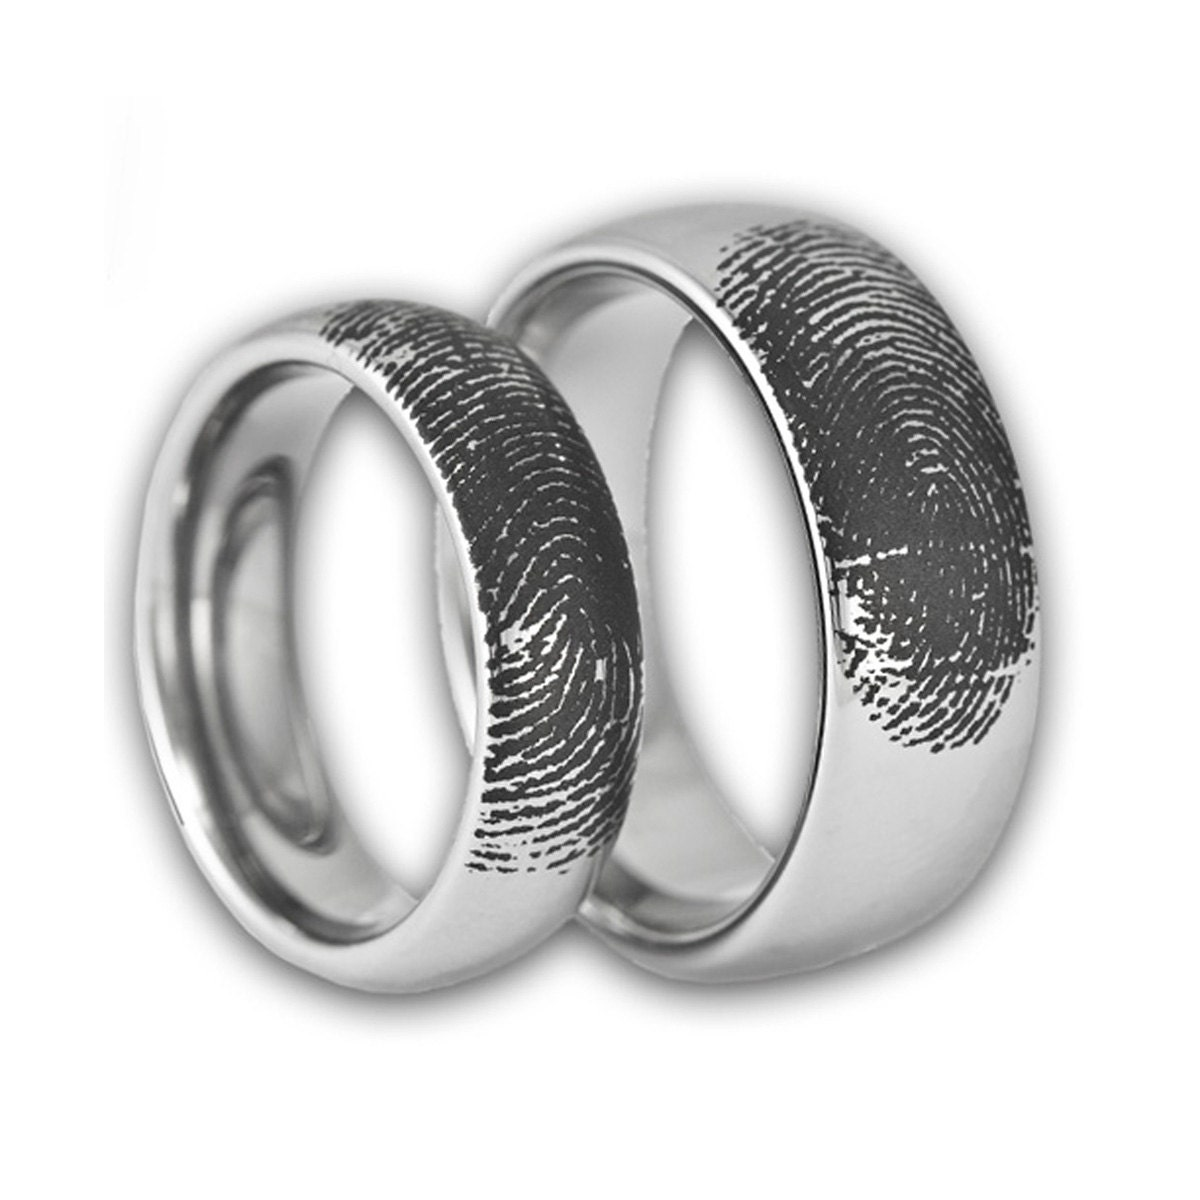 unisex silver special view sterling az occasion a rings all polished bands band wedding or jewelry engravable engraved bling mark si